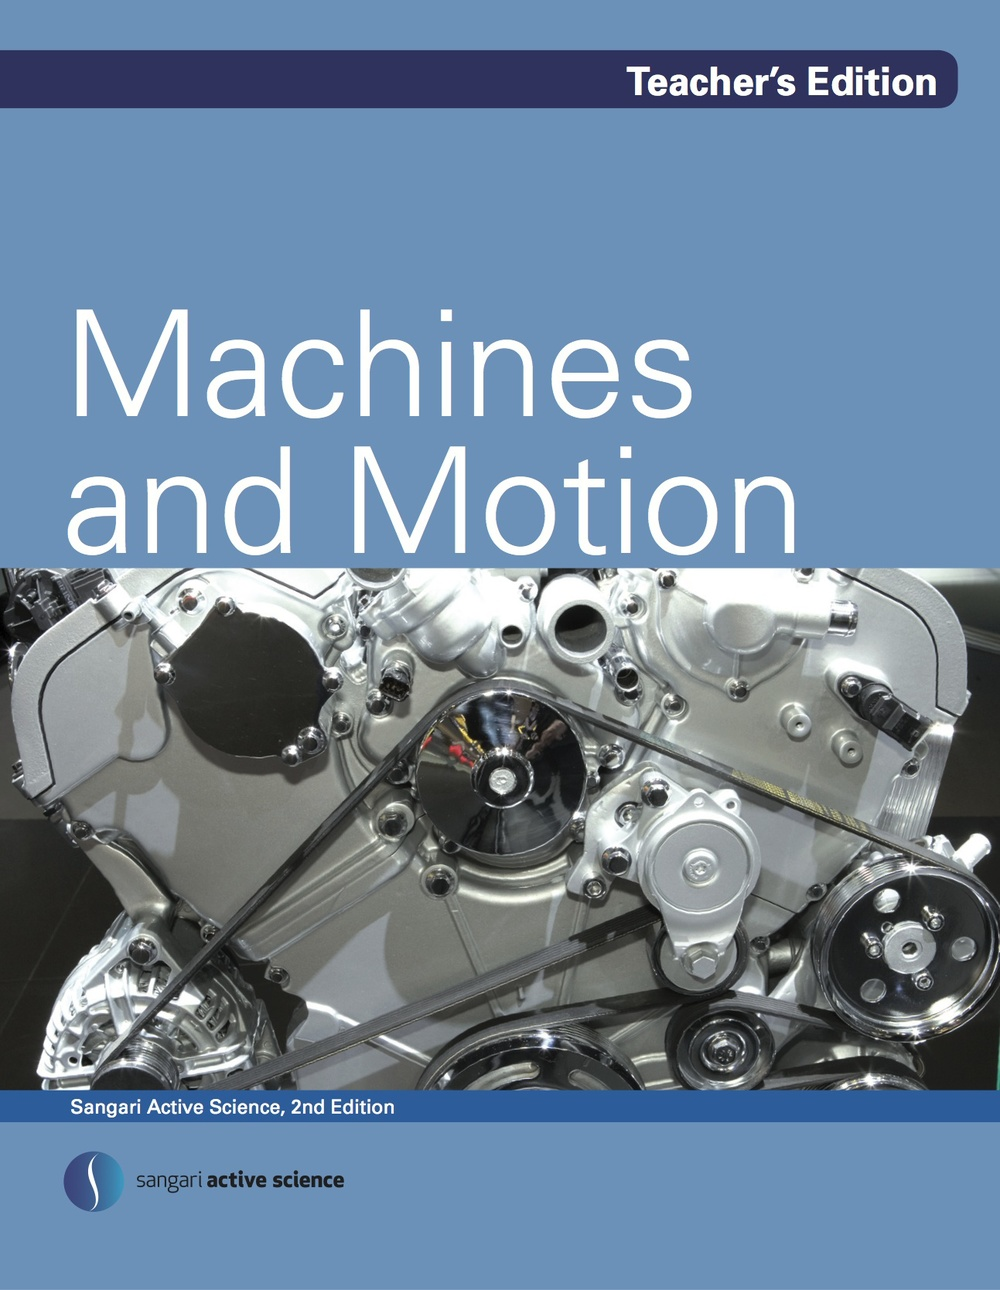 san-machines-te-cover.jpg